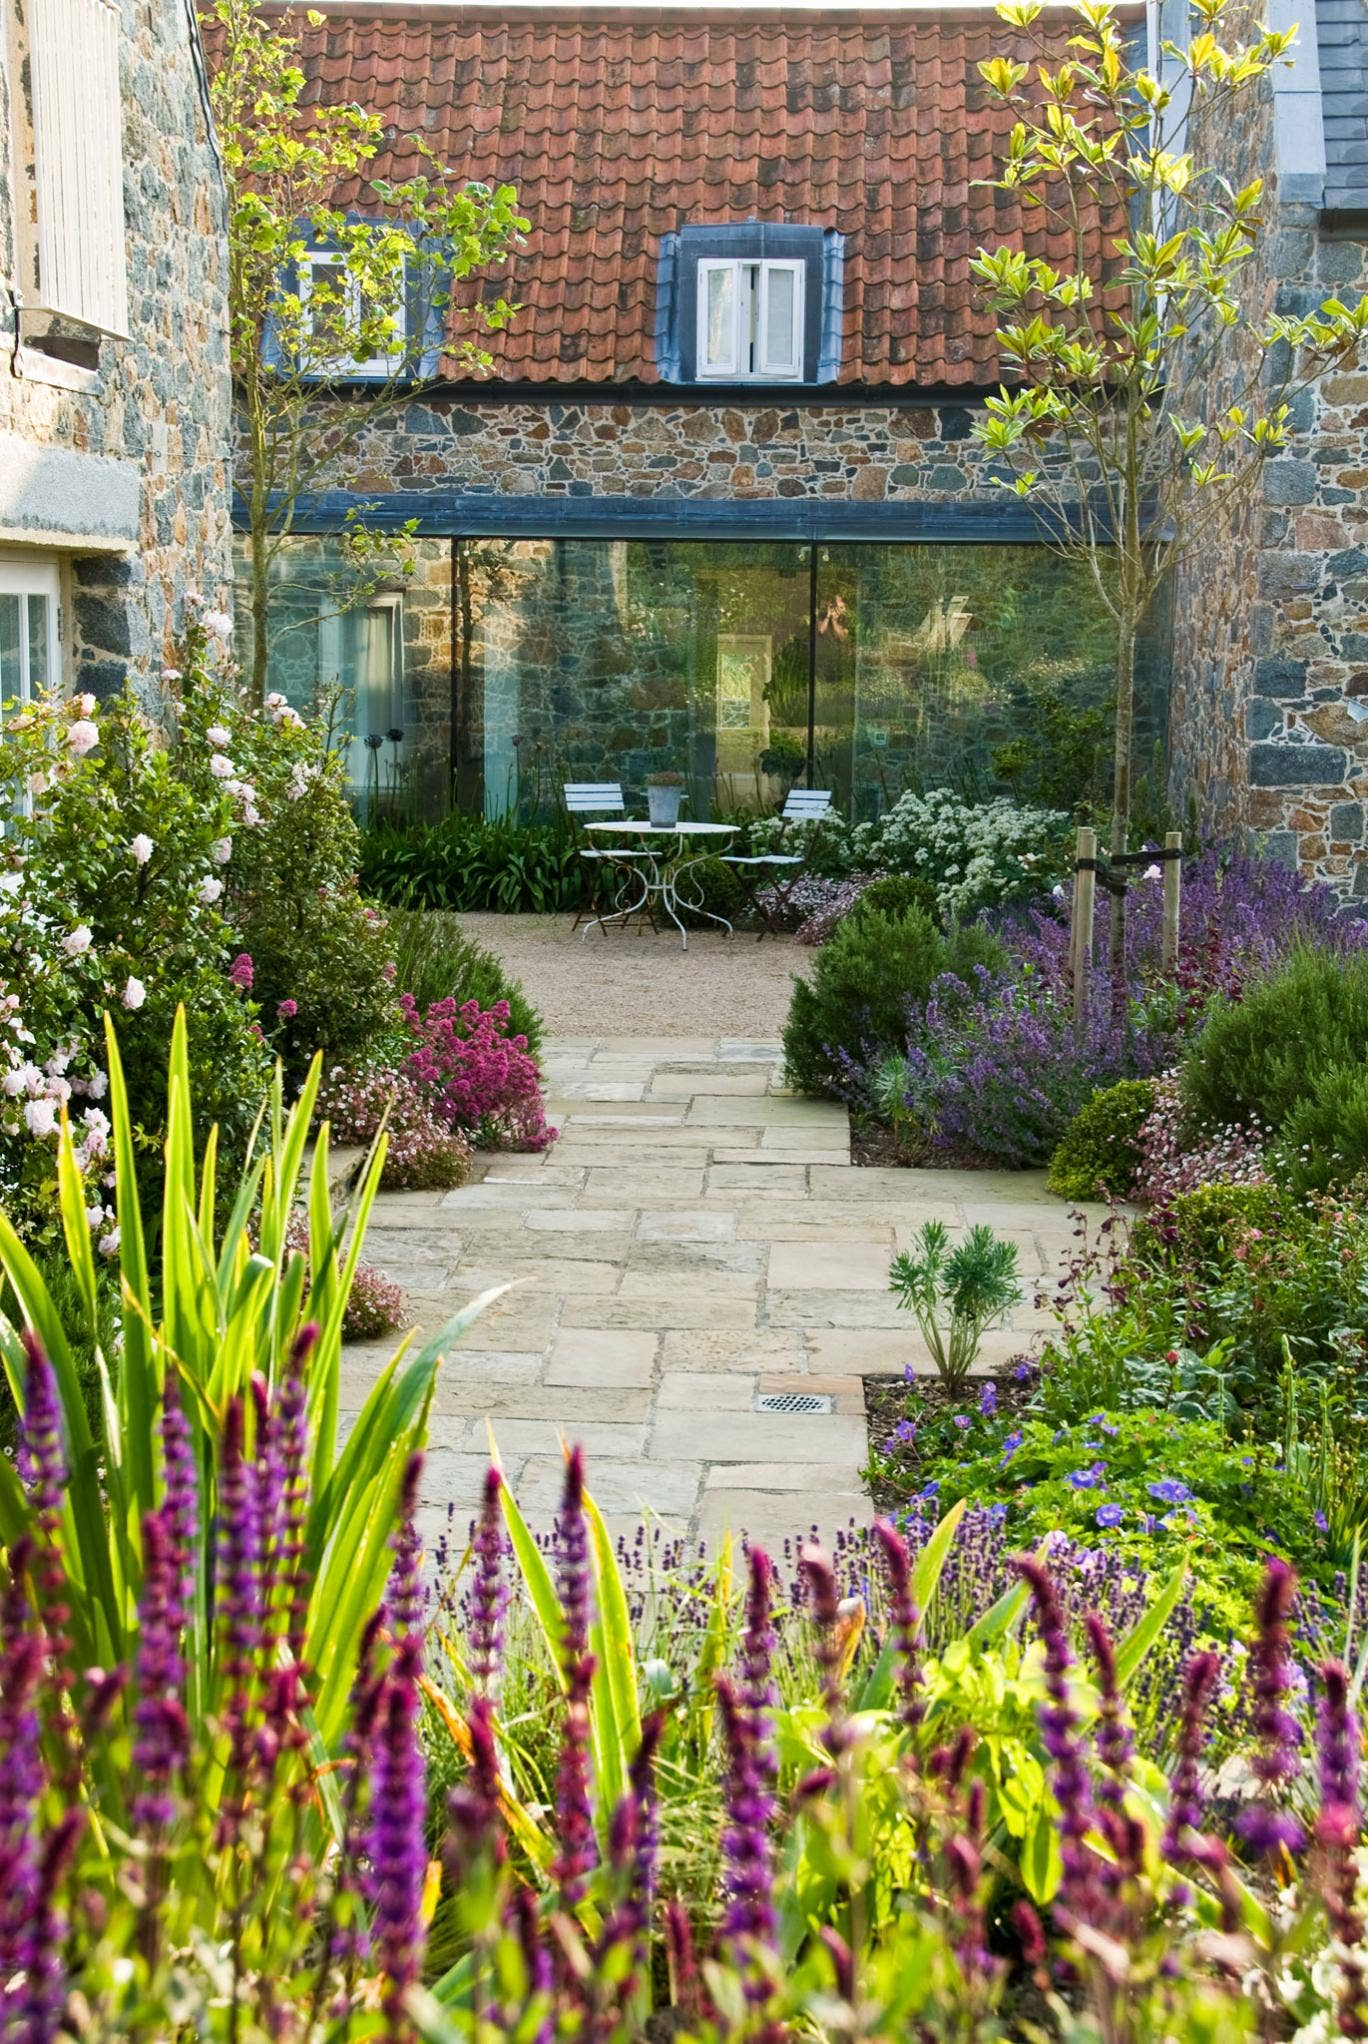 Debbie Roberts' courtyard garden in Guernsey makes the most of relaxed, lush planting